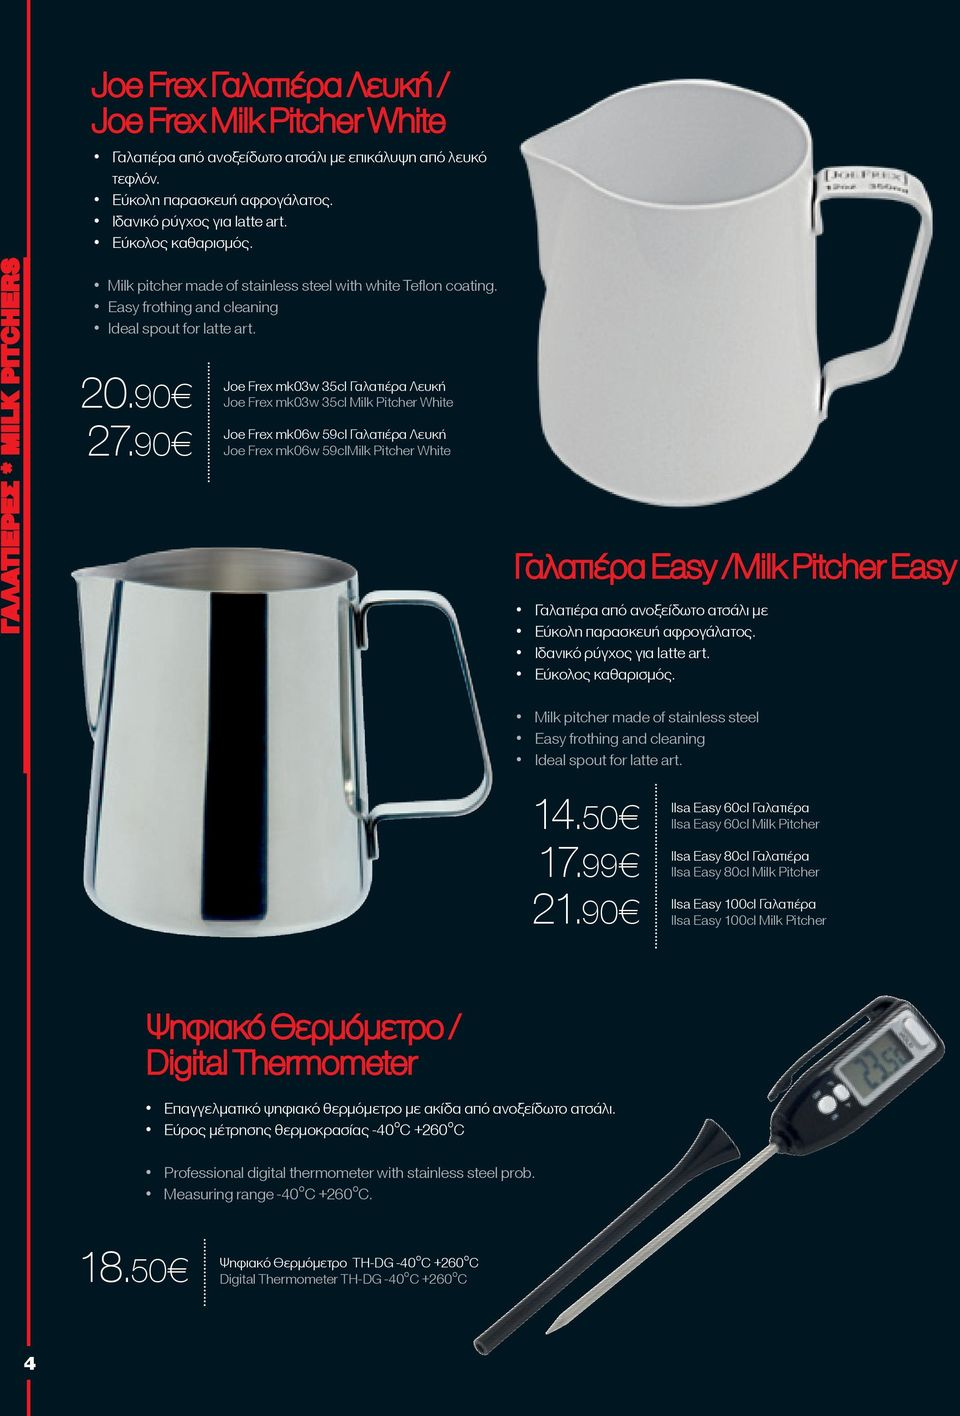 90 Joe Frex mk03w 35cl Γαλατιέρα Λευκή Joe Frex mk03w 35cl Milk Pitcher White Joe Frex mk06w 59cl Γαλατιέρα Λευκή Joe Frex mk06w 59clMilk Pitcher White Γαλατιέρα Easy /Milk Pitcher Easy Γαλατιέρα από